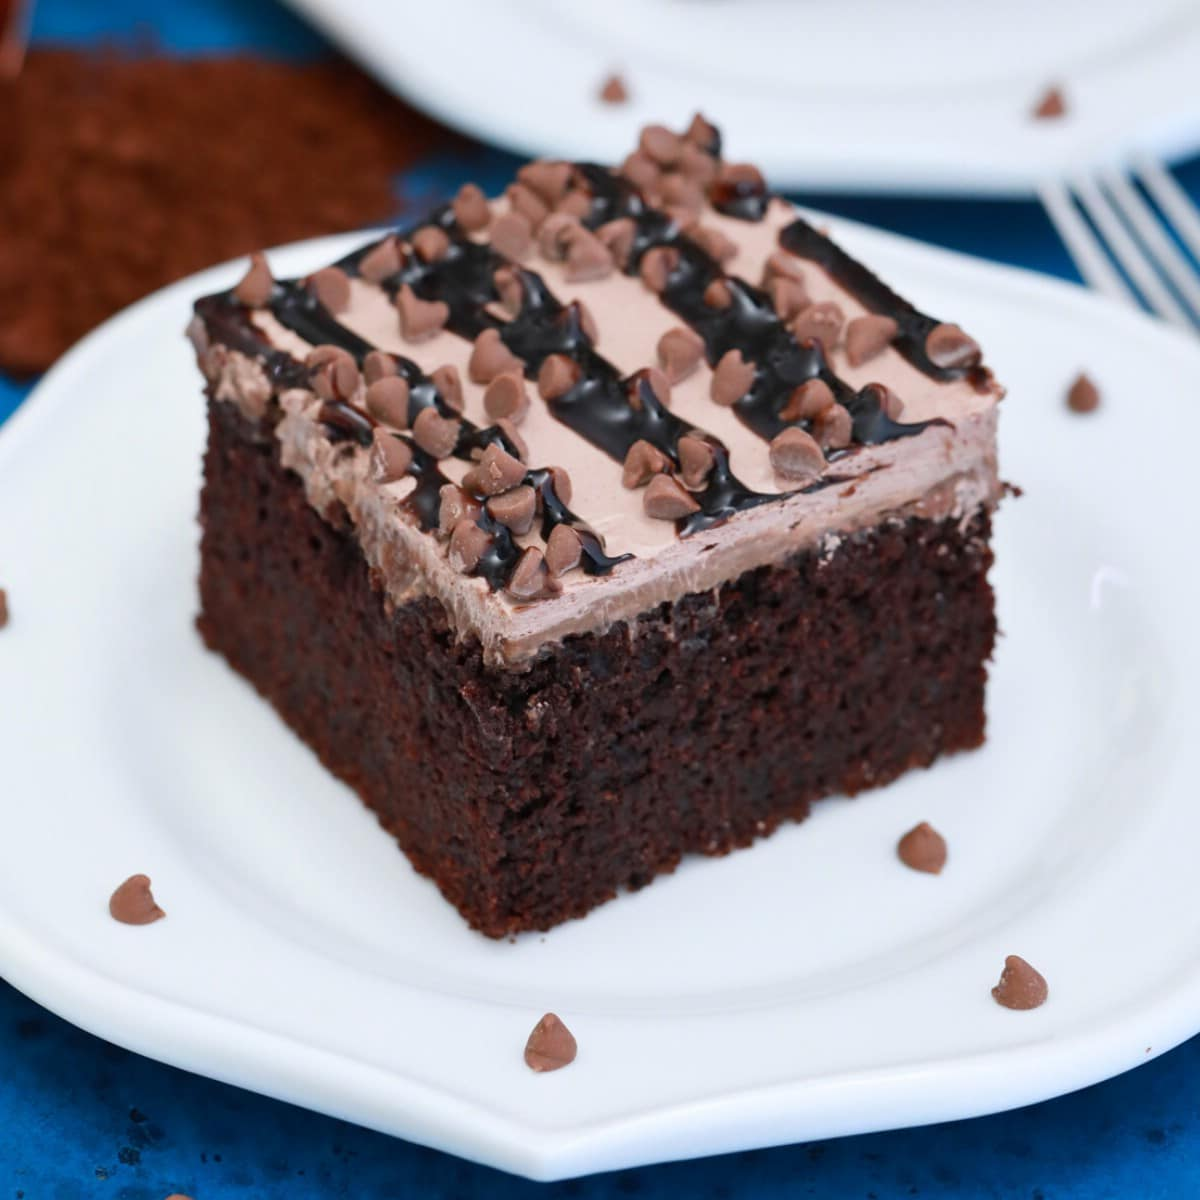 Slice of chocolate cake on white plate with mini chocolate chips